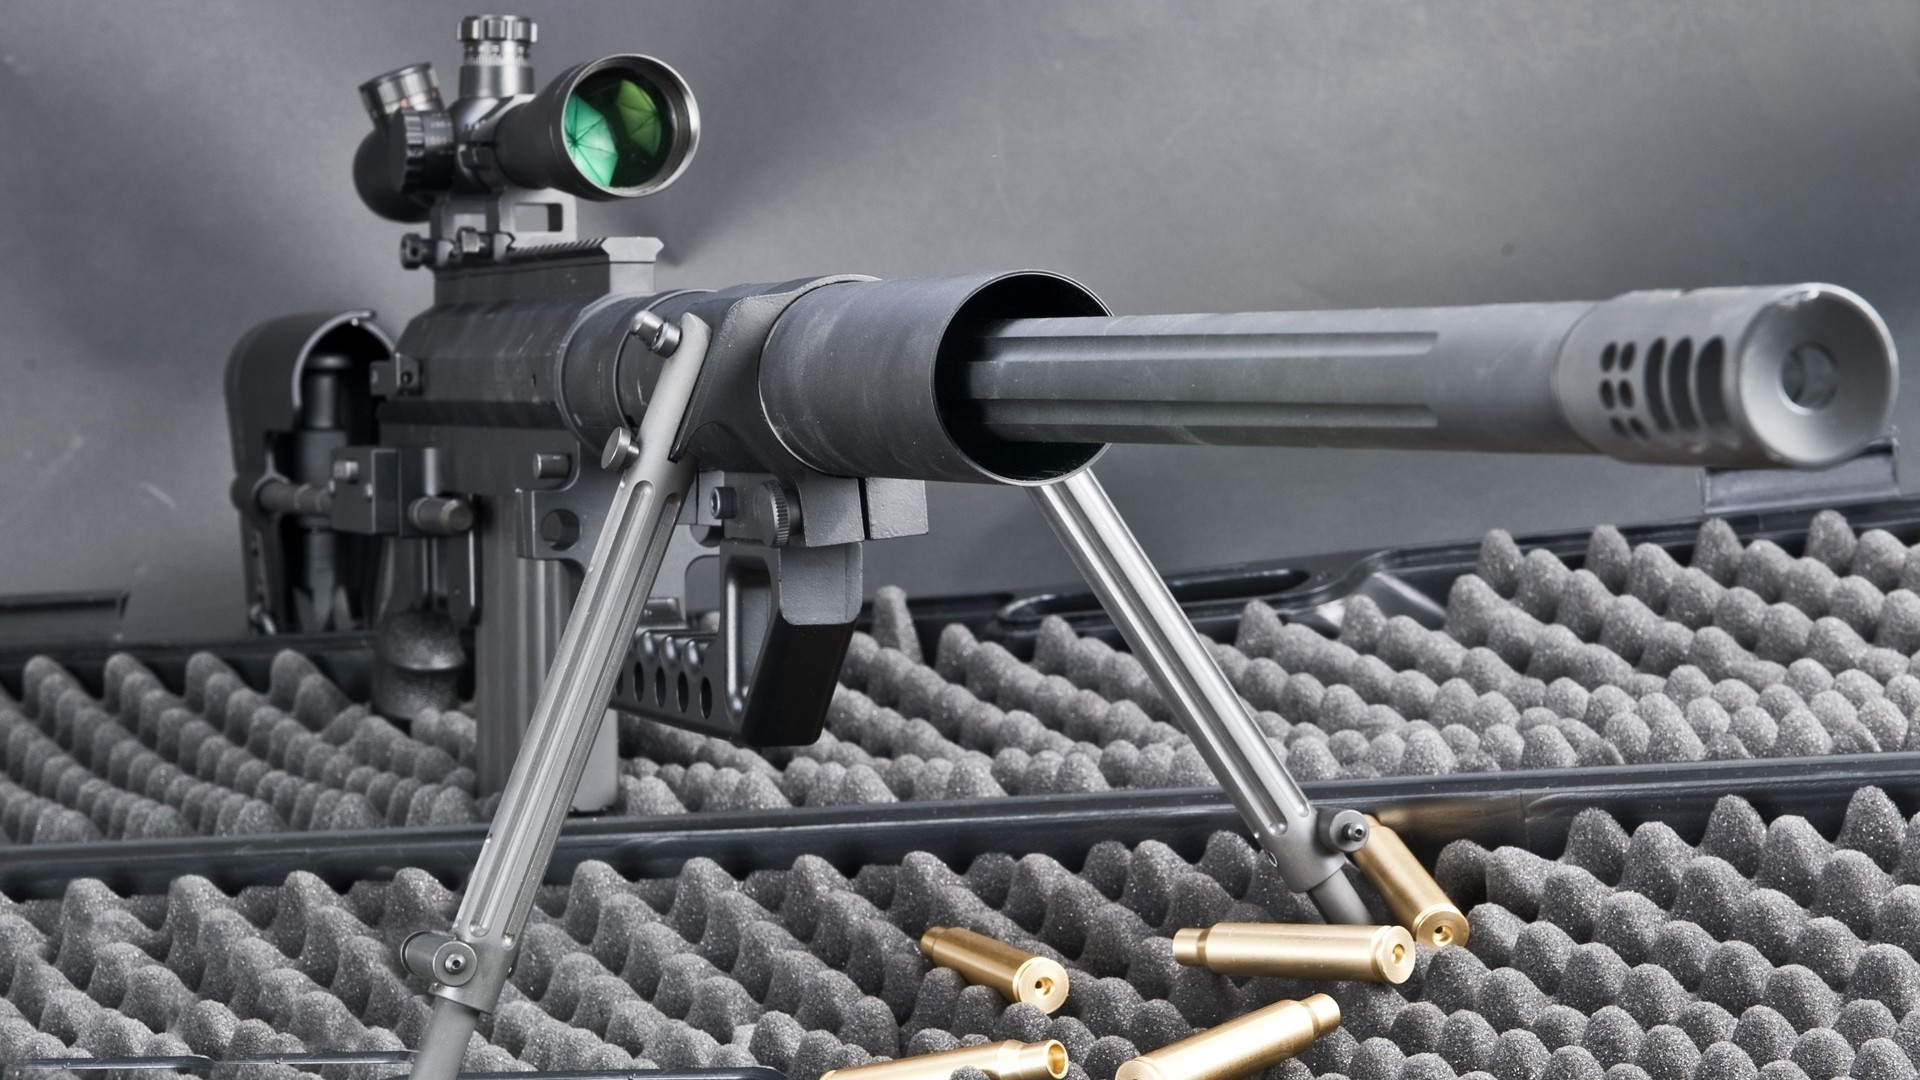 Sniper Rifles HD Wallpapers are to download from AMB Wallpapers 1920x1080